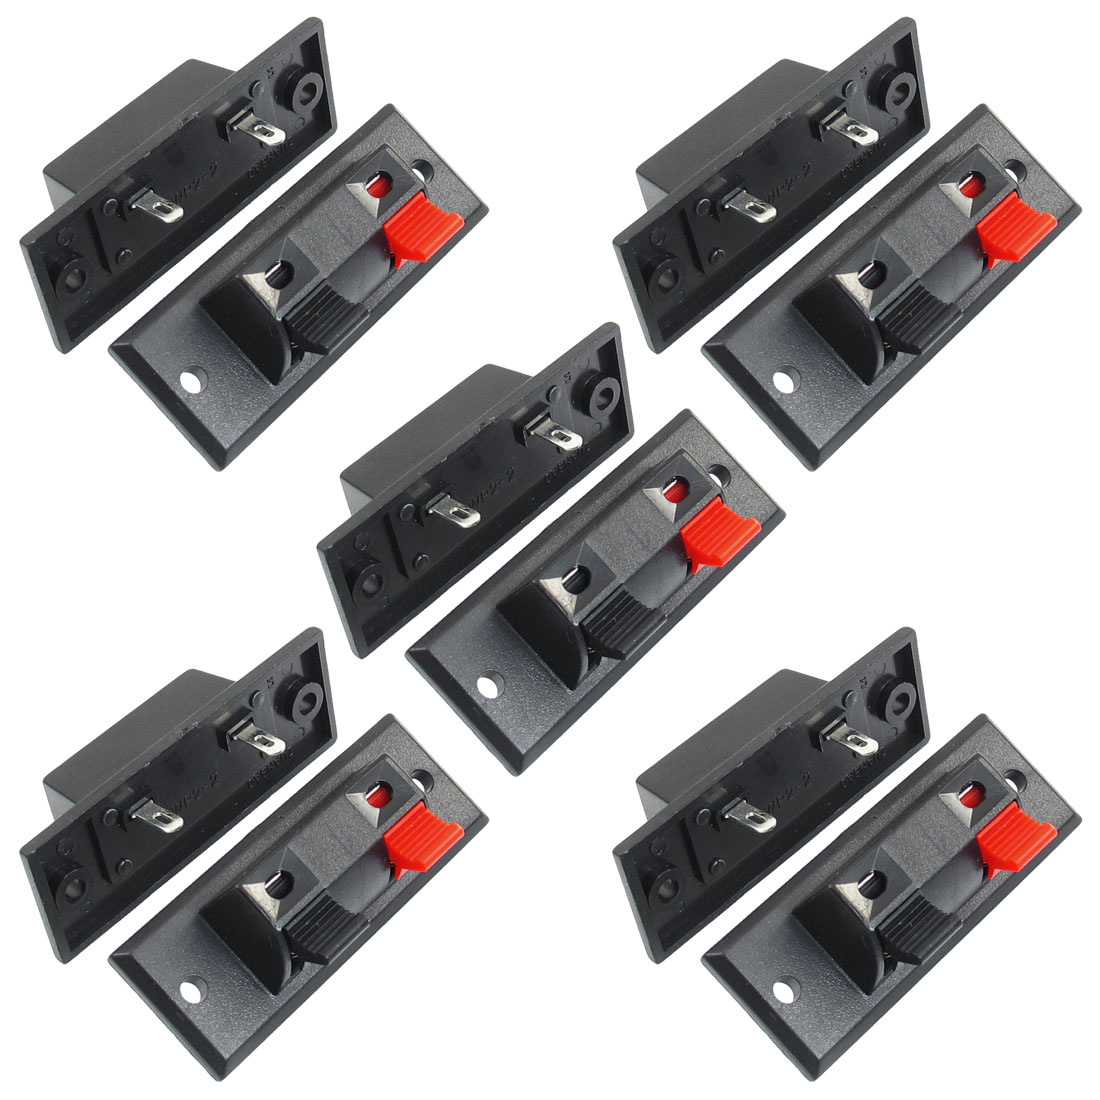 10 Pcs Single Row 1 Red 1 Black 2 Position Push Type Speaker Terminals